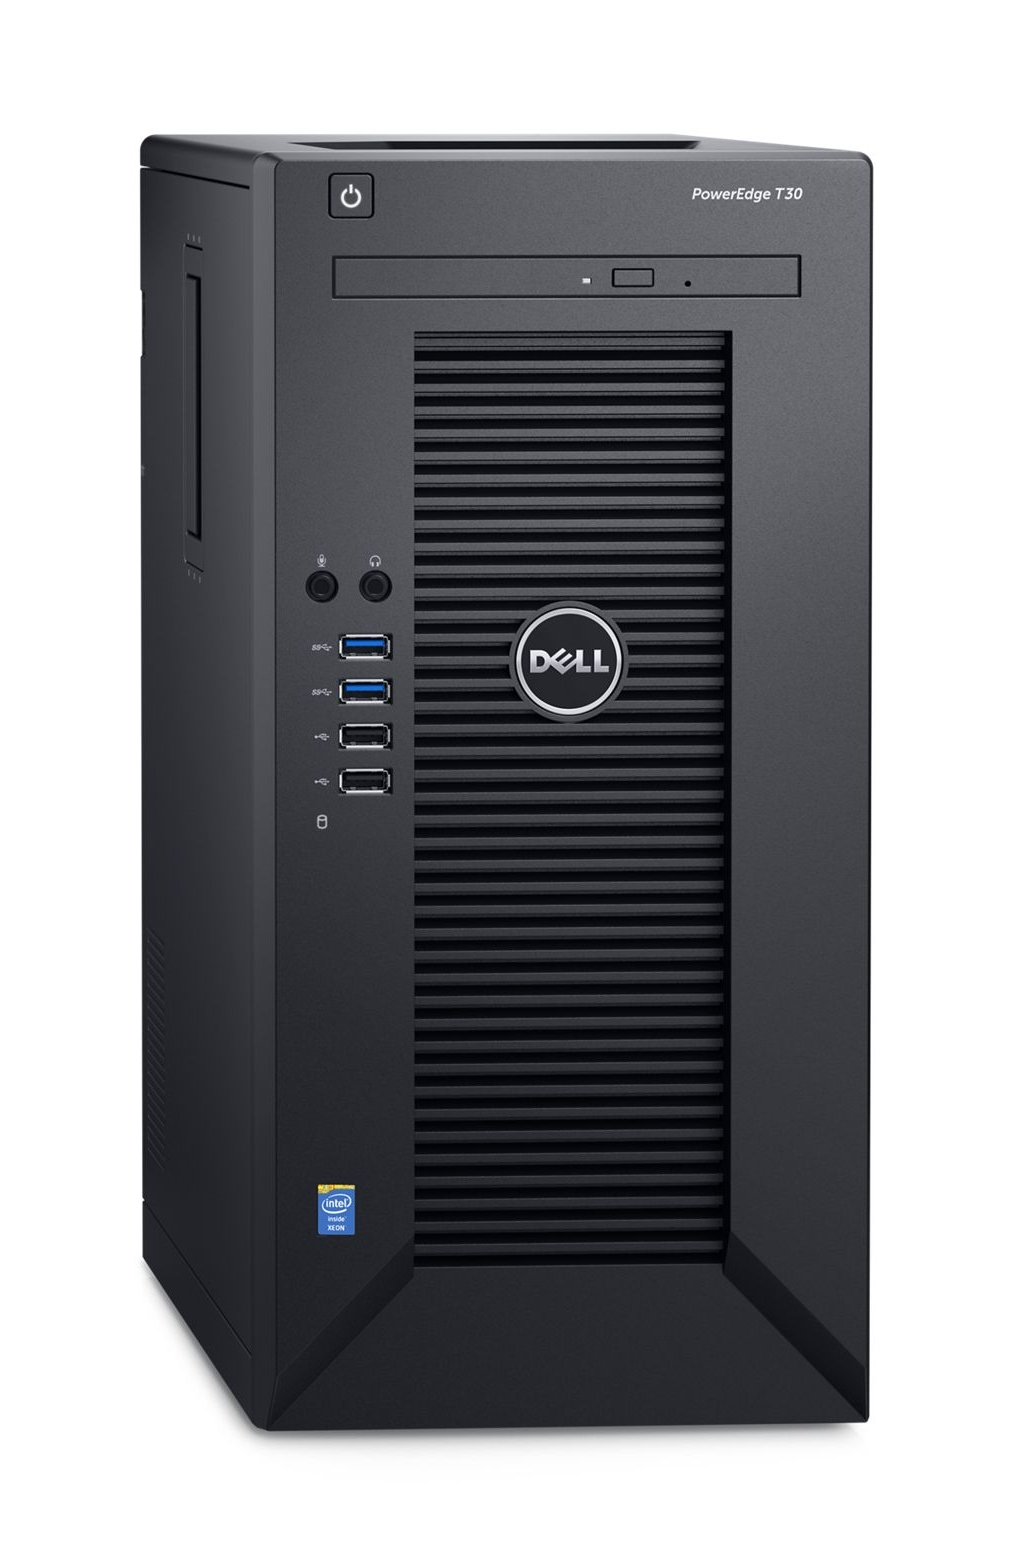 DELL PowerEdge T30 3.3GHz E3-1225V5 290W Mini Tower server